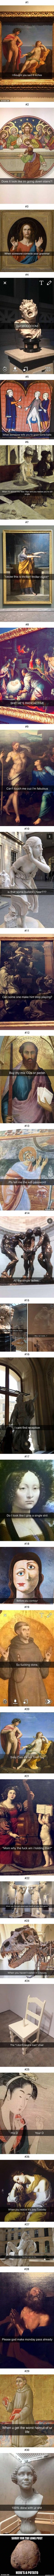 30 Museum Snapchats That'll Make Art History Fun Again